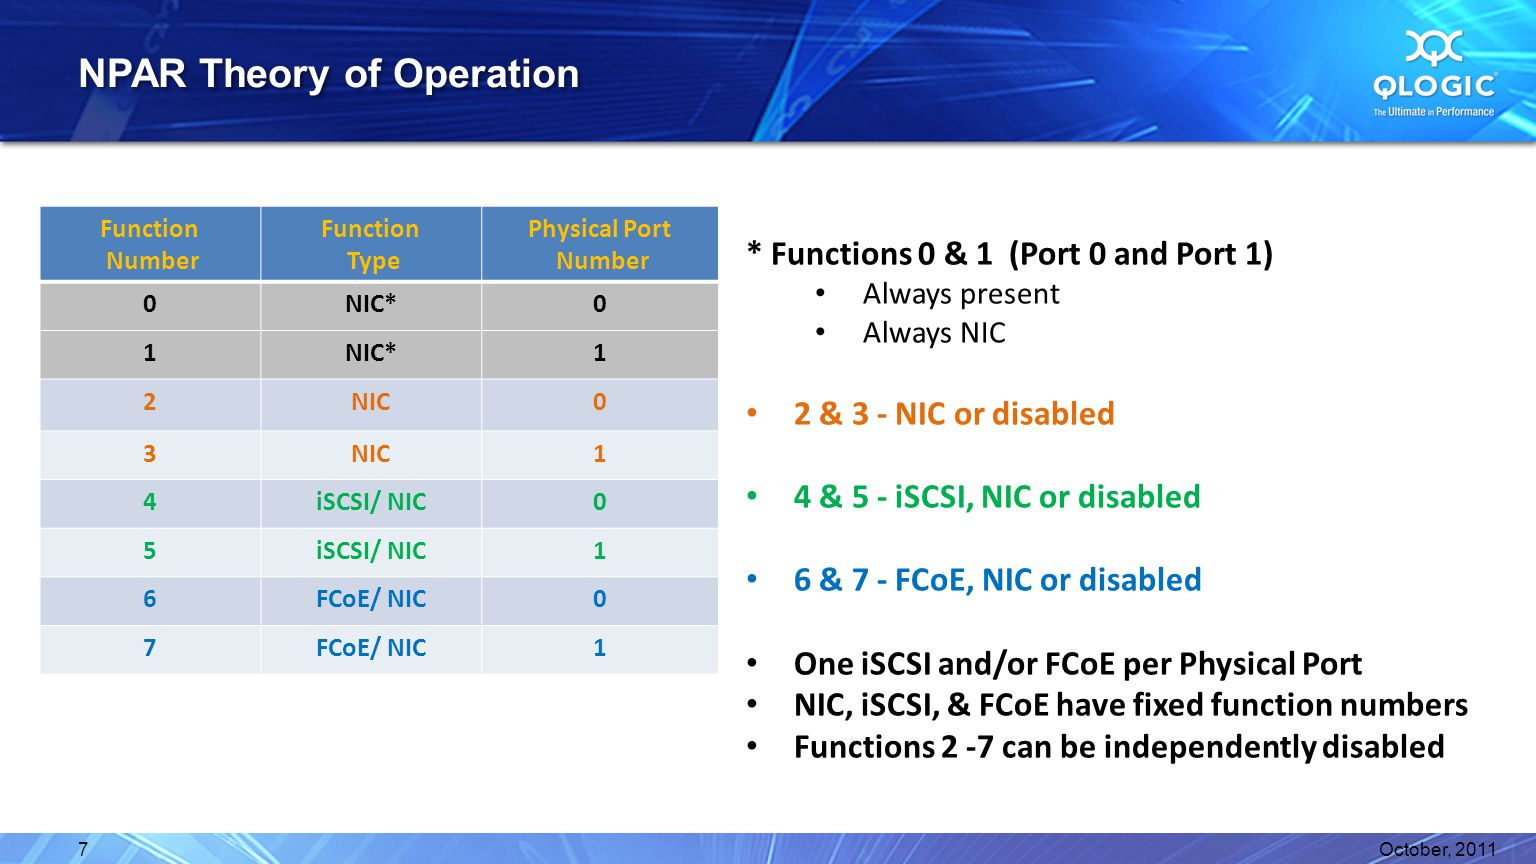 NPAR Theory of Operation Function Number Function Type Physical Port Number 0NIC*0 1 1 2NIC0 3 1 4iSCSI/ NIC0 5 1 6FCoE/ NIC0 7 1 * Functions 0 & 1 (Port 0 and Port 1) Always present Always NIC 2 & 3 - NIC or disabled 4 & 5 - iSCSI, NIC or disabled 6 & 7 - FCoE, NIC or disabled One iSCSI and/or FCoE per Physical Port NIC, iSCSI, & FCoE have fixed function numbers Functions 2 -7 can be independently disabled October, 20117